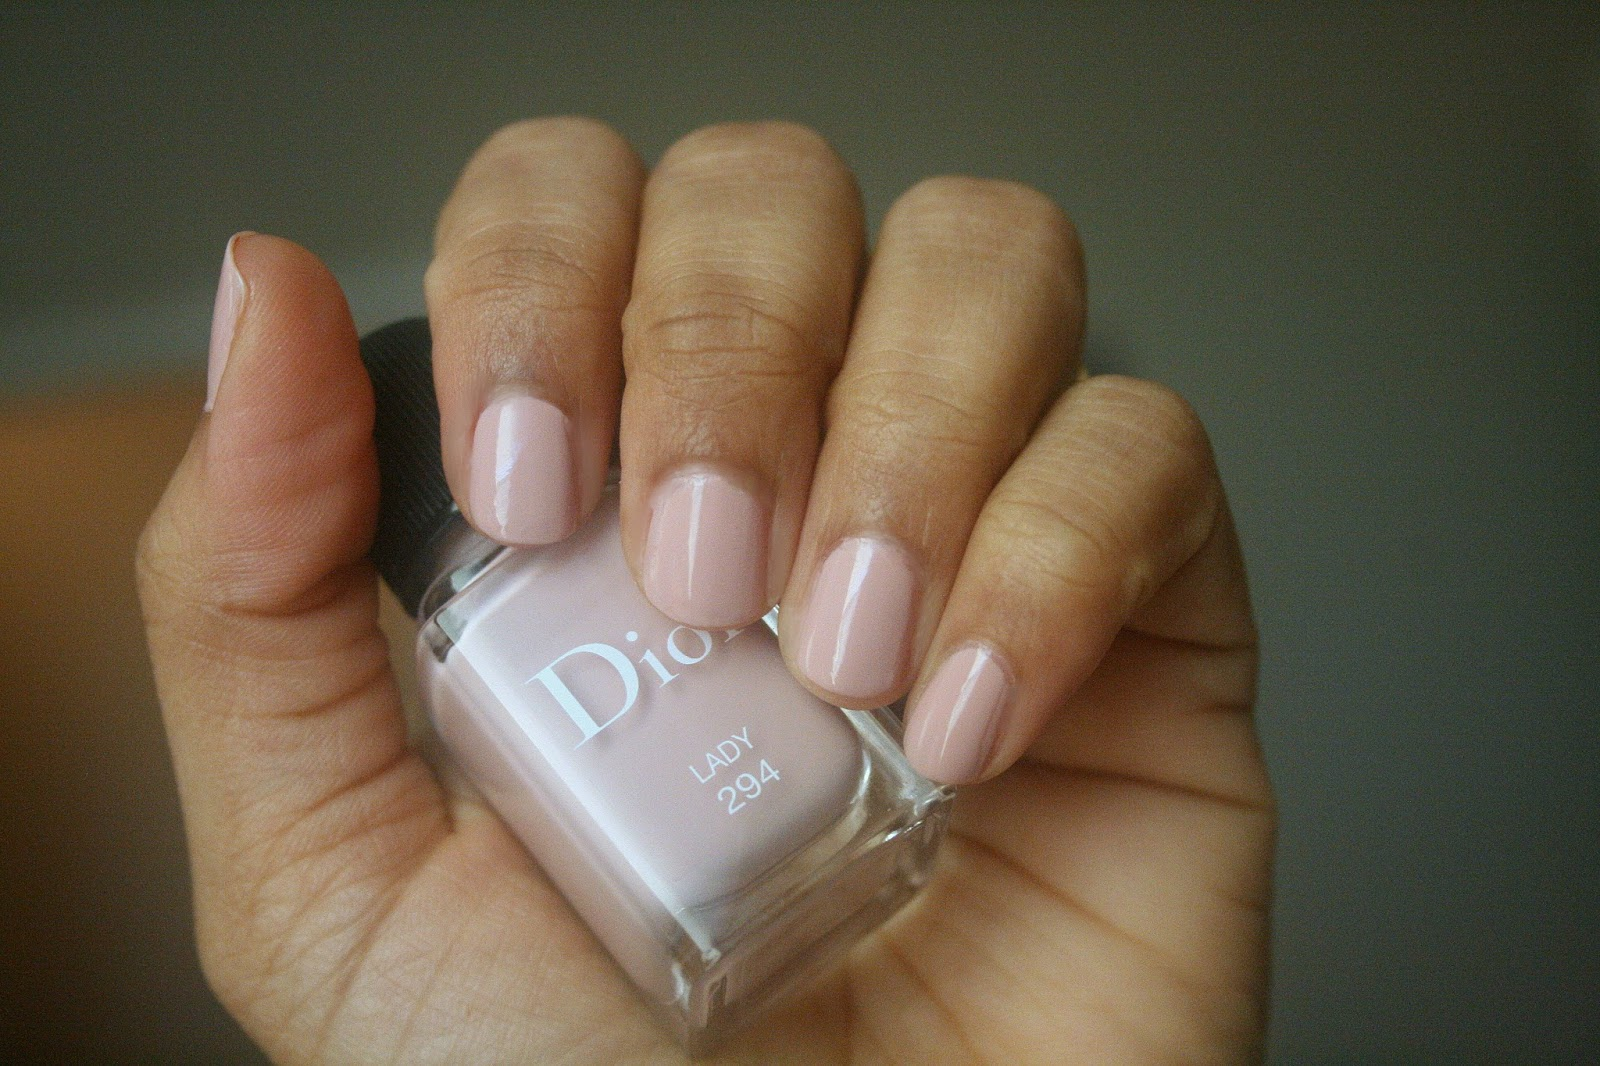 Dior Vernis Lady #294 Swatch